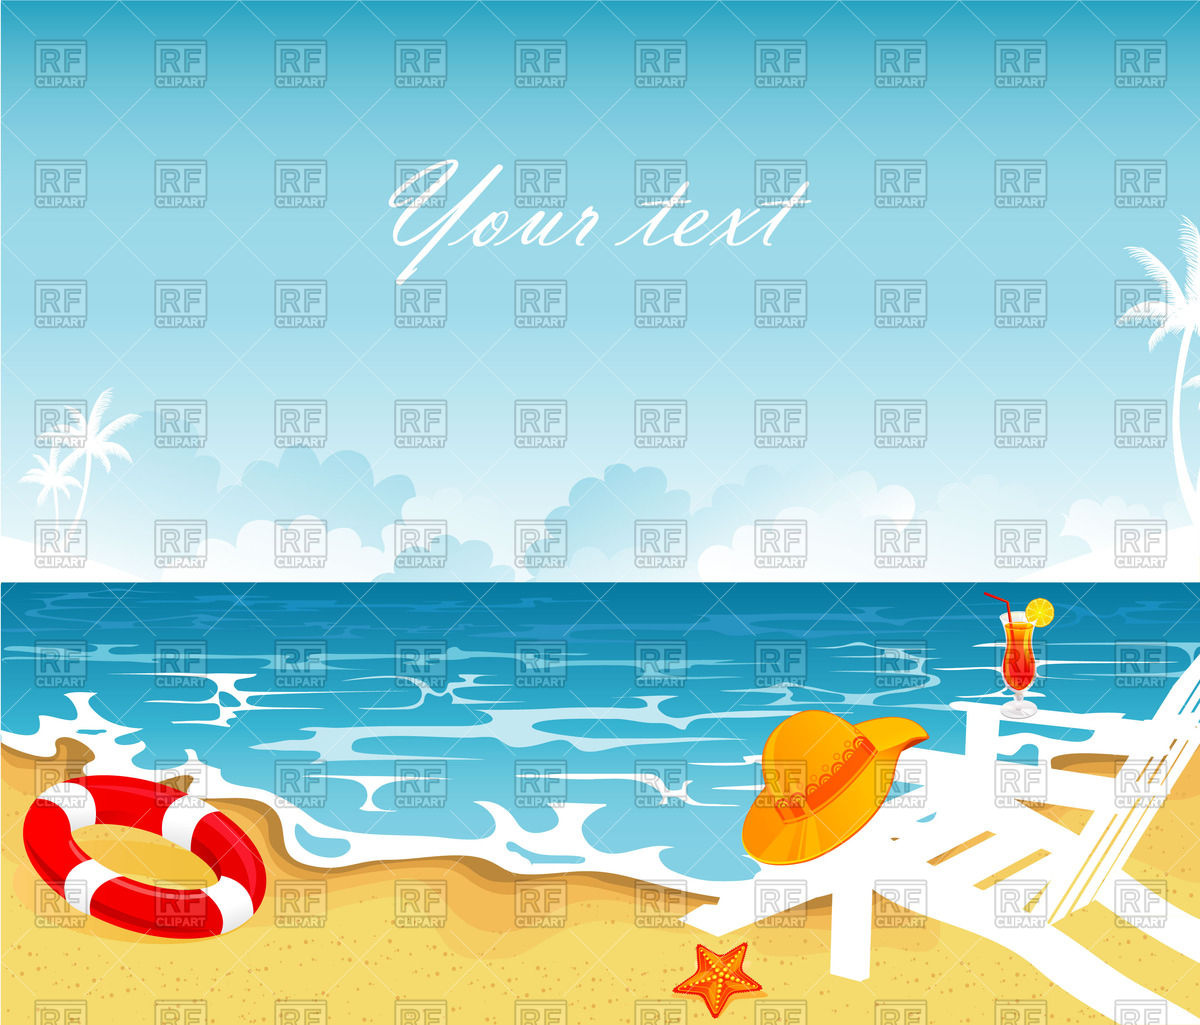 Tropical beach with palm trees and sun loungers Vector Image.